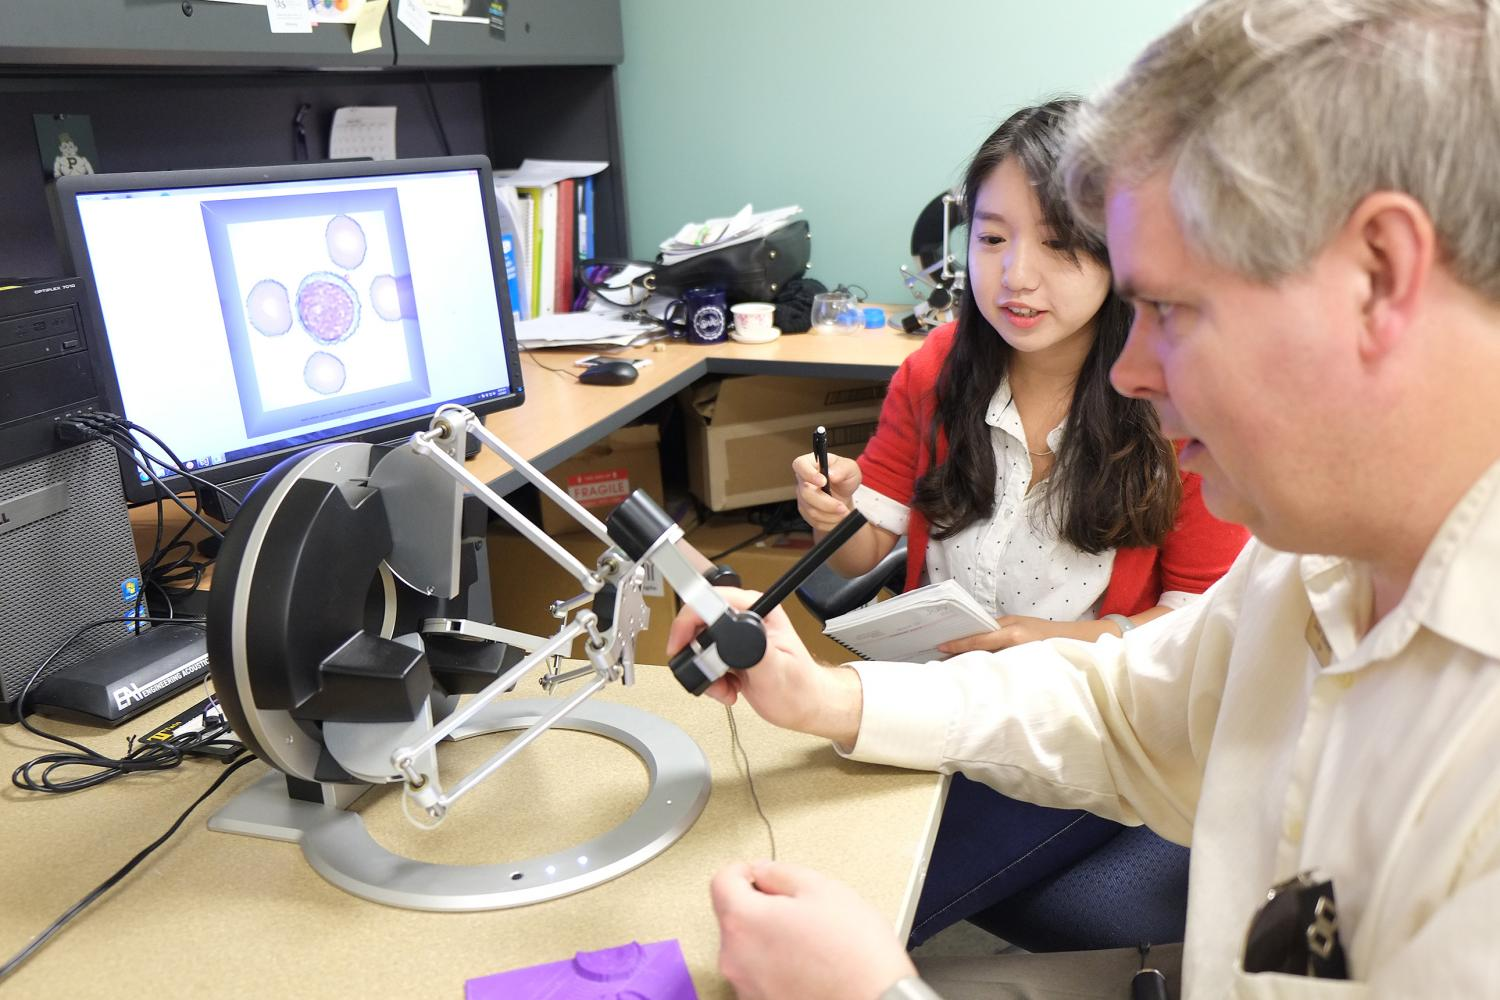 Assistive Tech For People With Visual Impairments To Identify Scientific Images On A Computer Screen